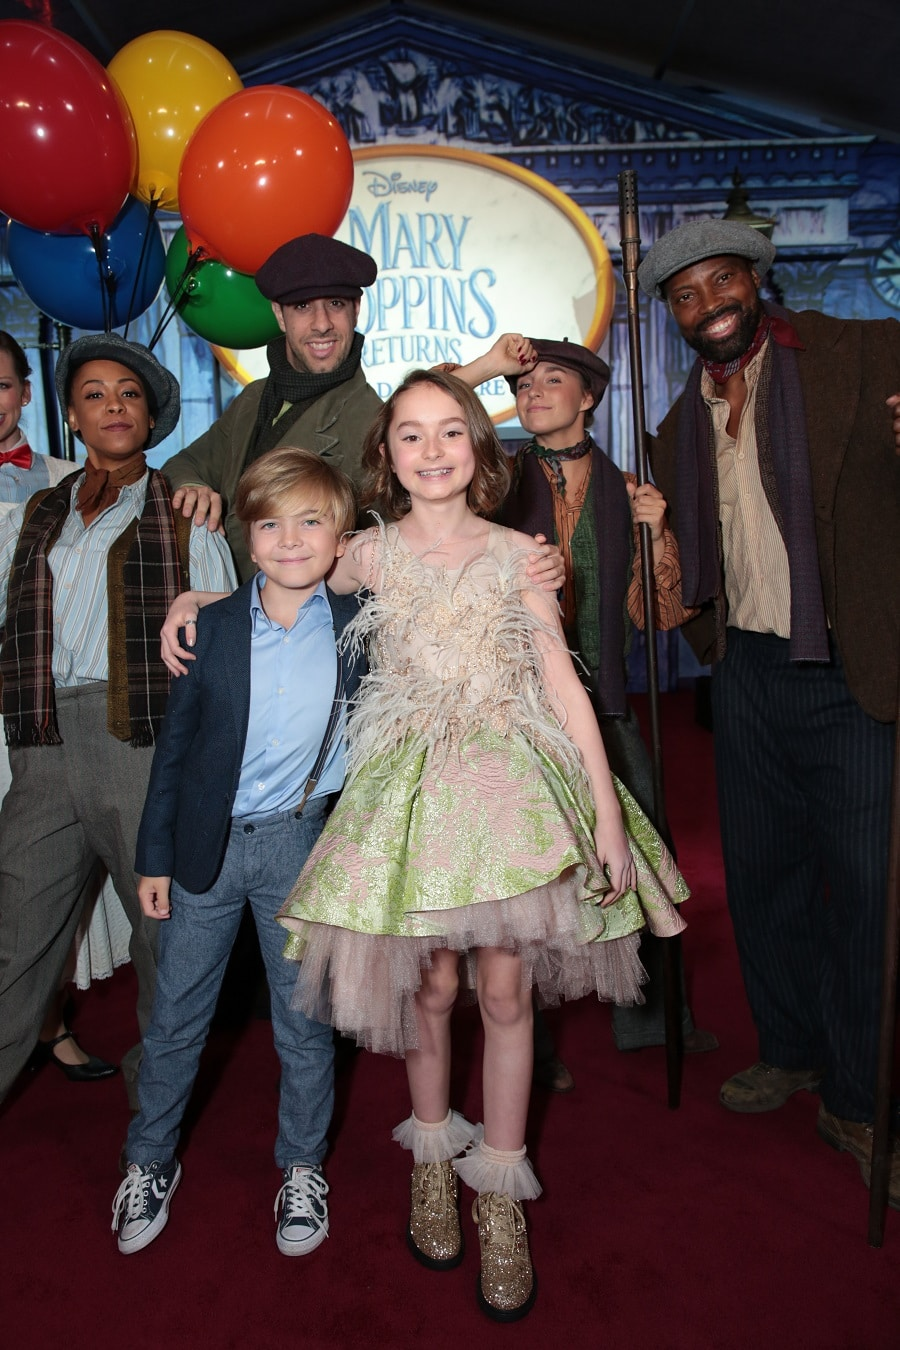 Find Out What The Adorable Pixie Davies and Joel Dawson Think About Their Roles In Mary Poppins Returns